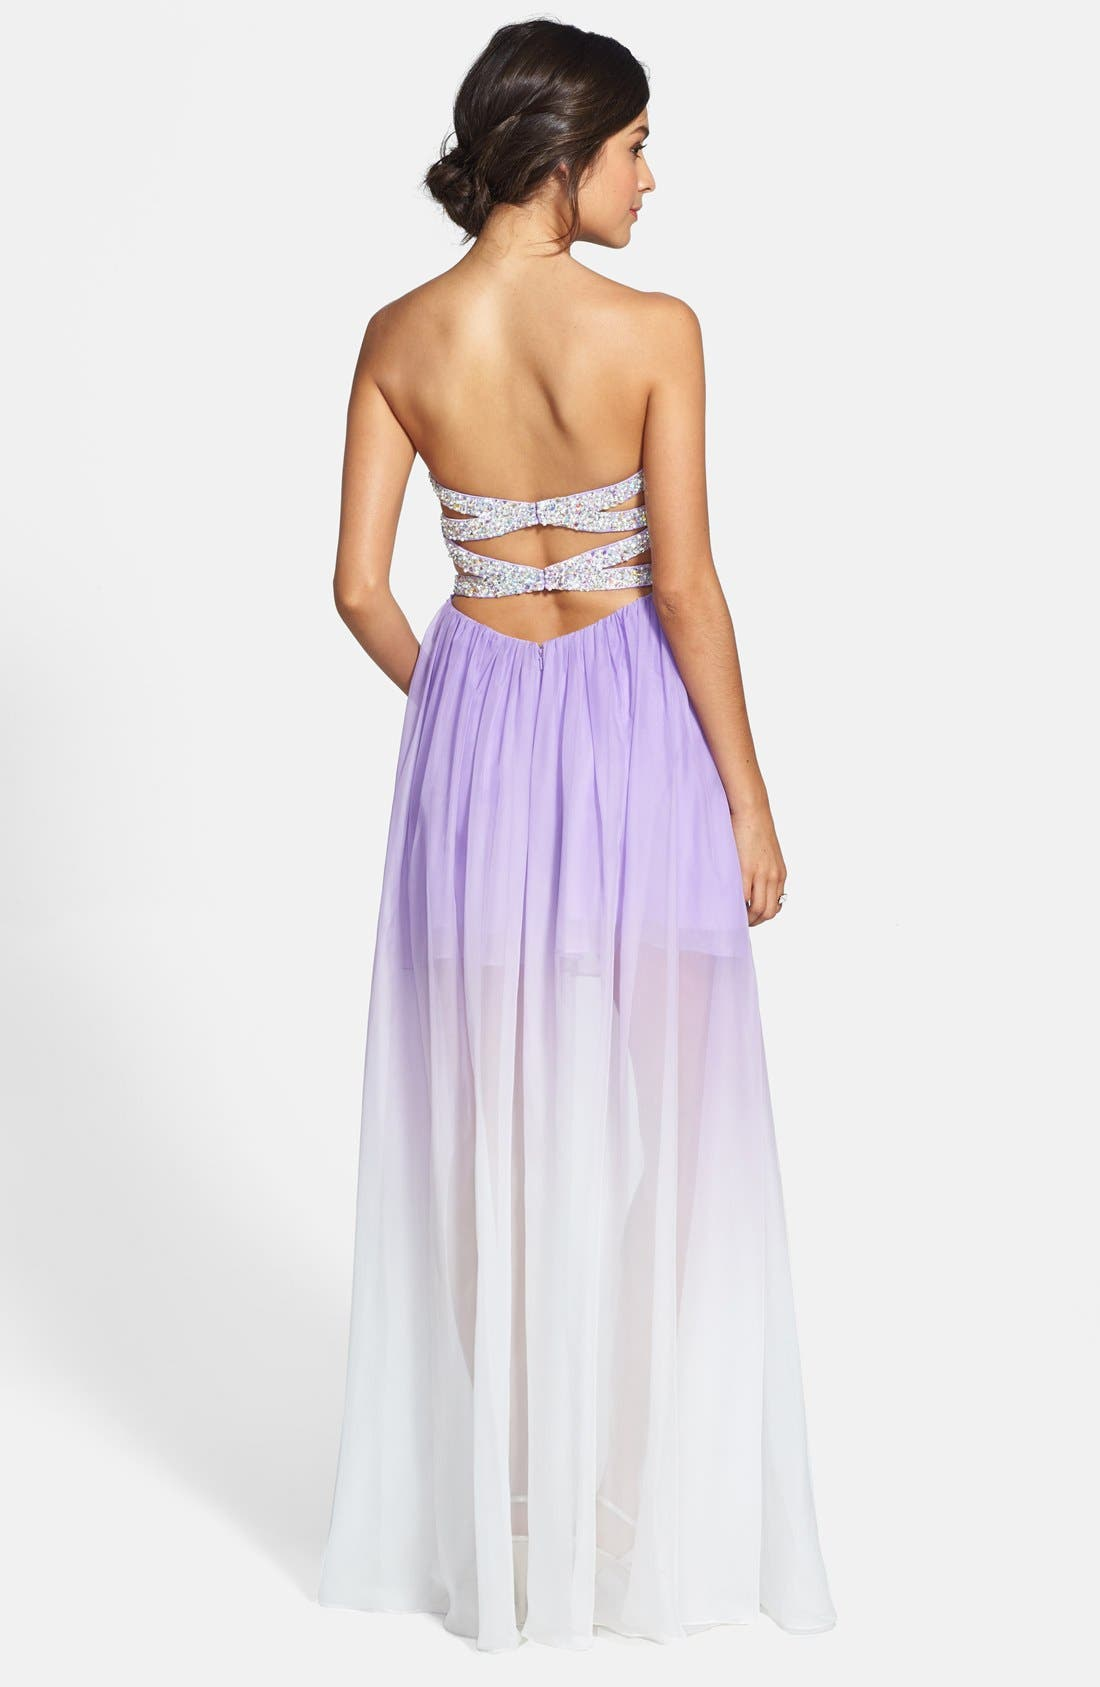 Ombré Chiffon Gown,                             Alternate thumbnail 2, color,                             530